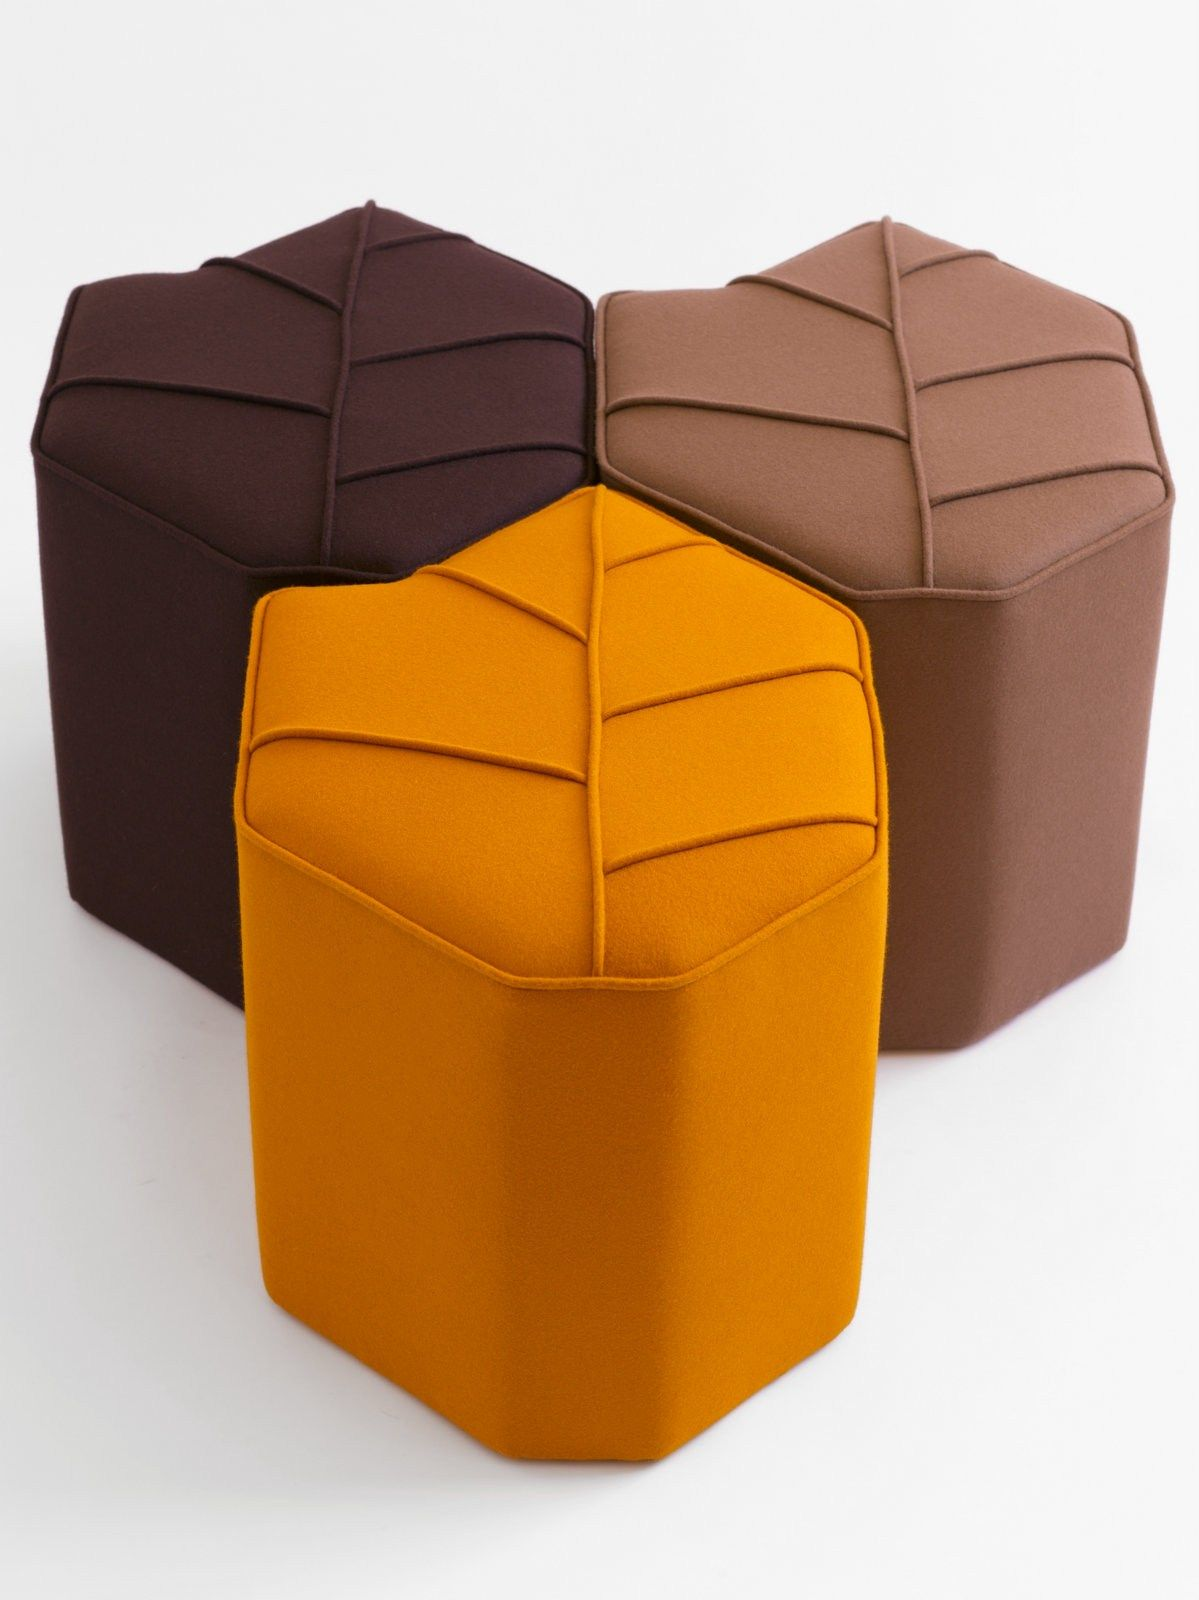 leaf seat  leaves stools and ottomans - leaf seat modern furniturefurniture designpoufstentcrafts